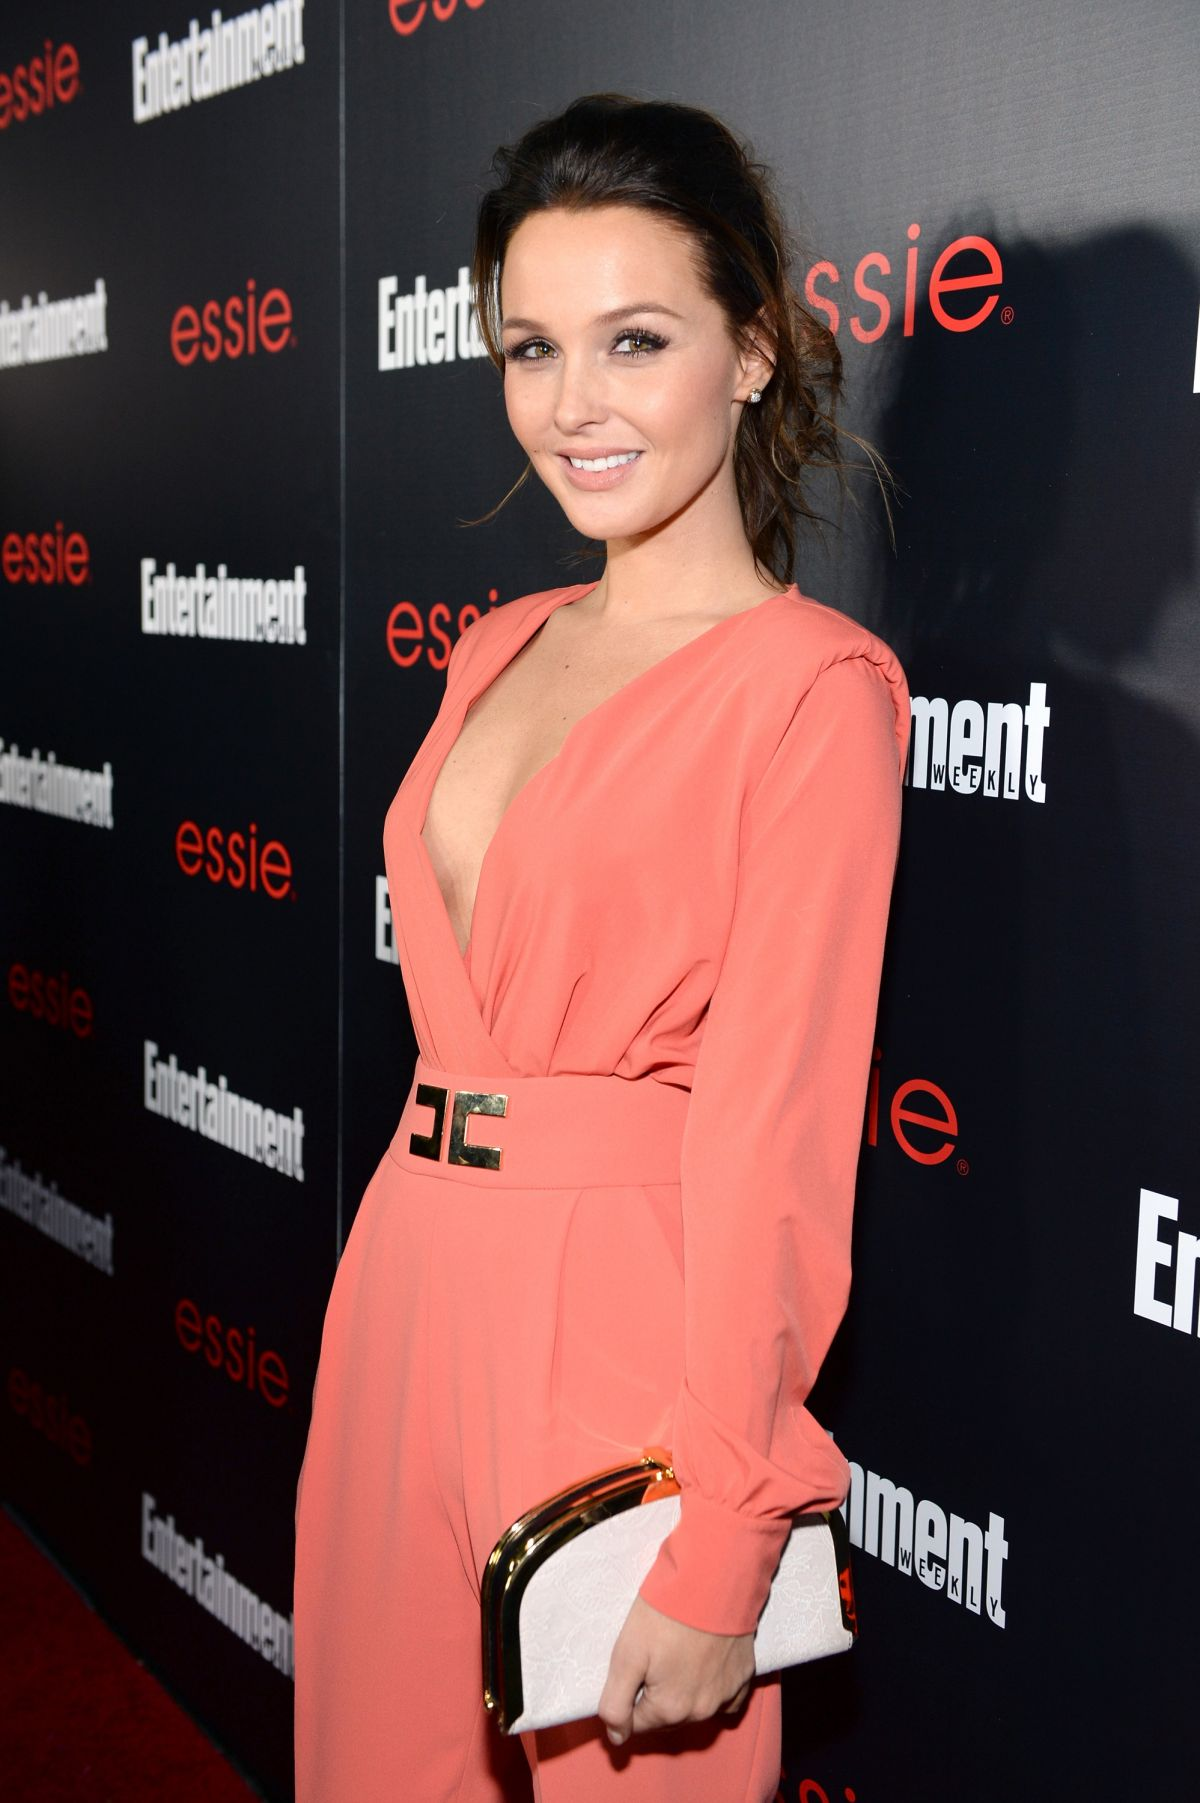 http://www.hawtcelebs.com/wp-content/uploads/2014/01/camilla-luddington-at-entertainment-weekly-celebration-honoring-sag-awards-nominees_1.jpg